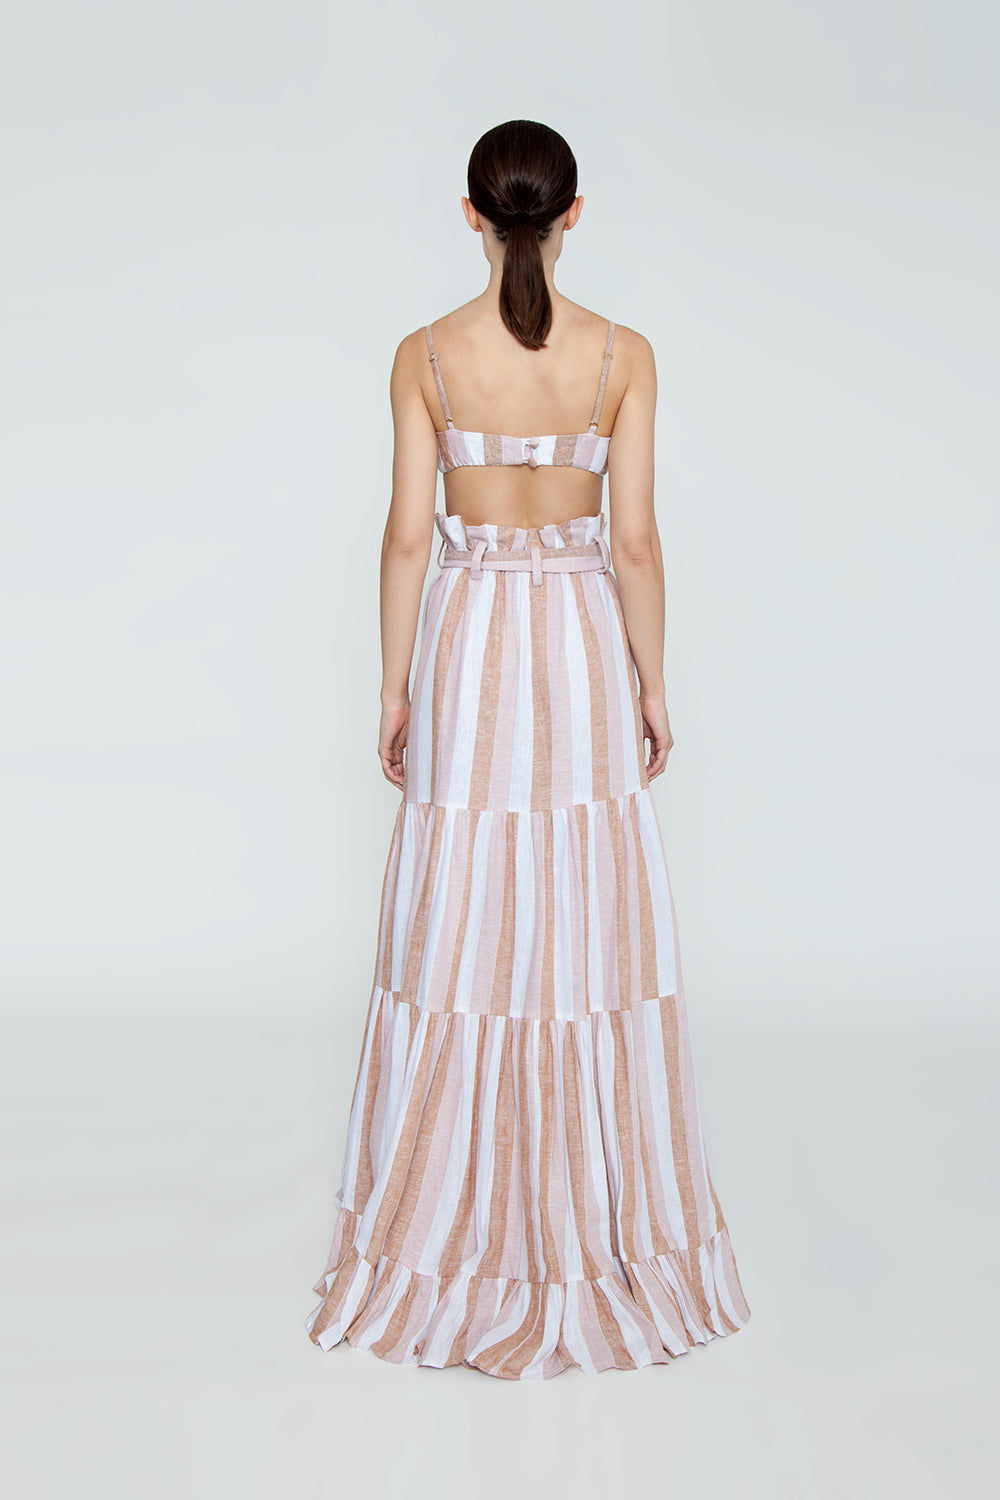 ADRIANA DEGREAS Striped Clochard Long Skirt - Porto Rose Stripe Print Skirt | Porto Rose Stripe Print| Adriana Degreas Striped Clochard Long Skirt - Porto Rose Stripe Print. Features:  high waisted skirt Cut from linen Main: 100% Cotton Back View